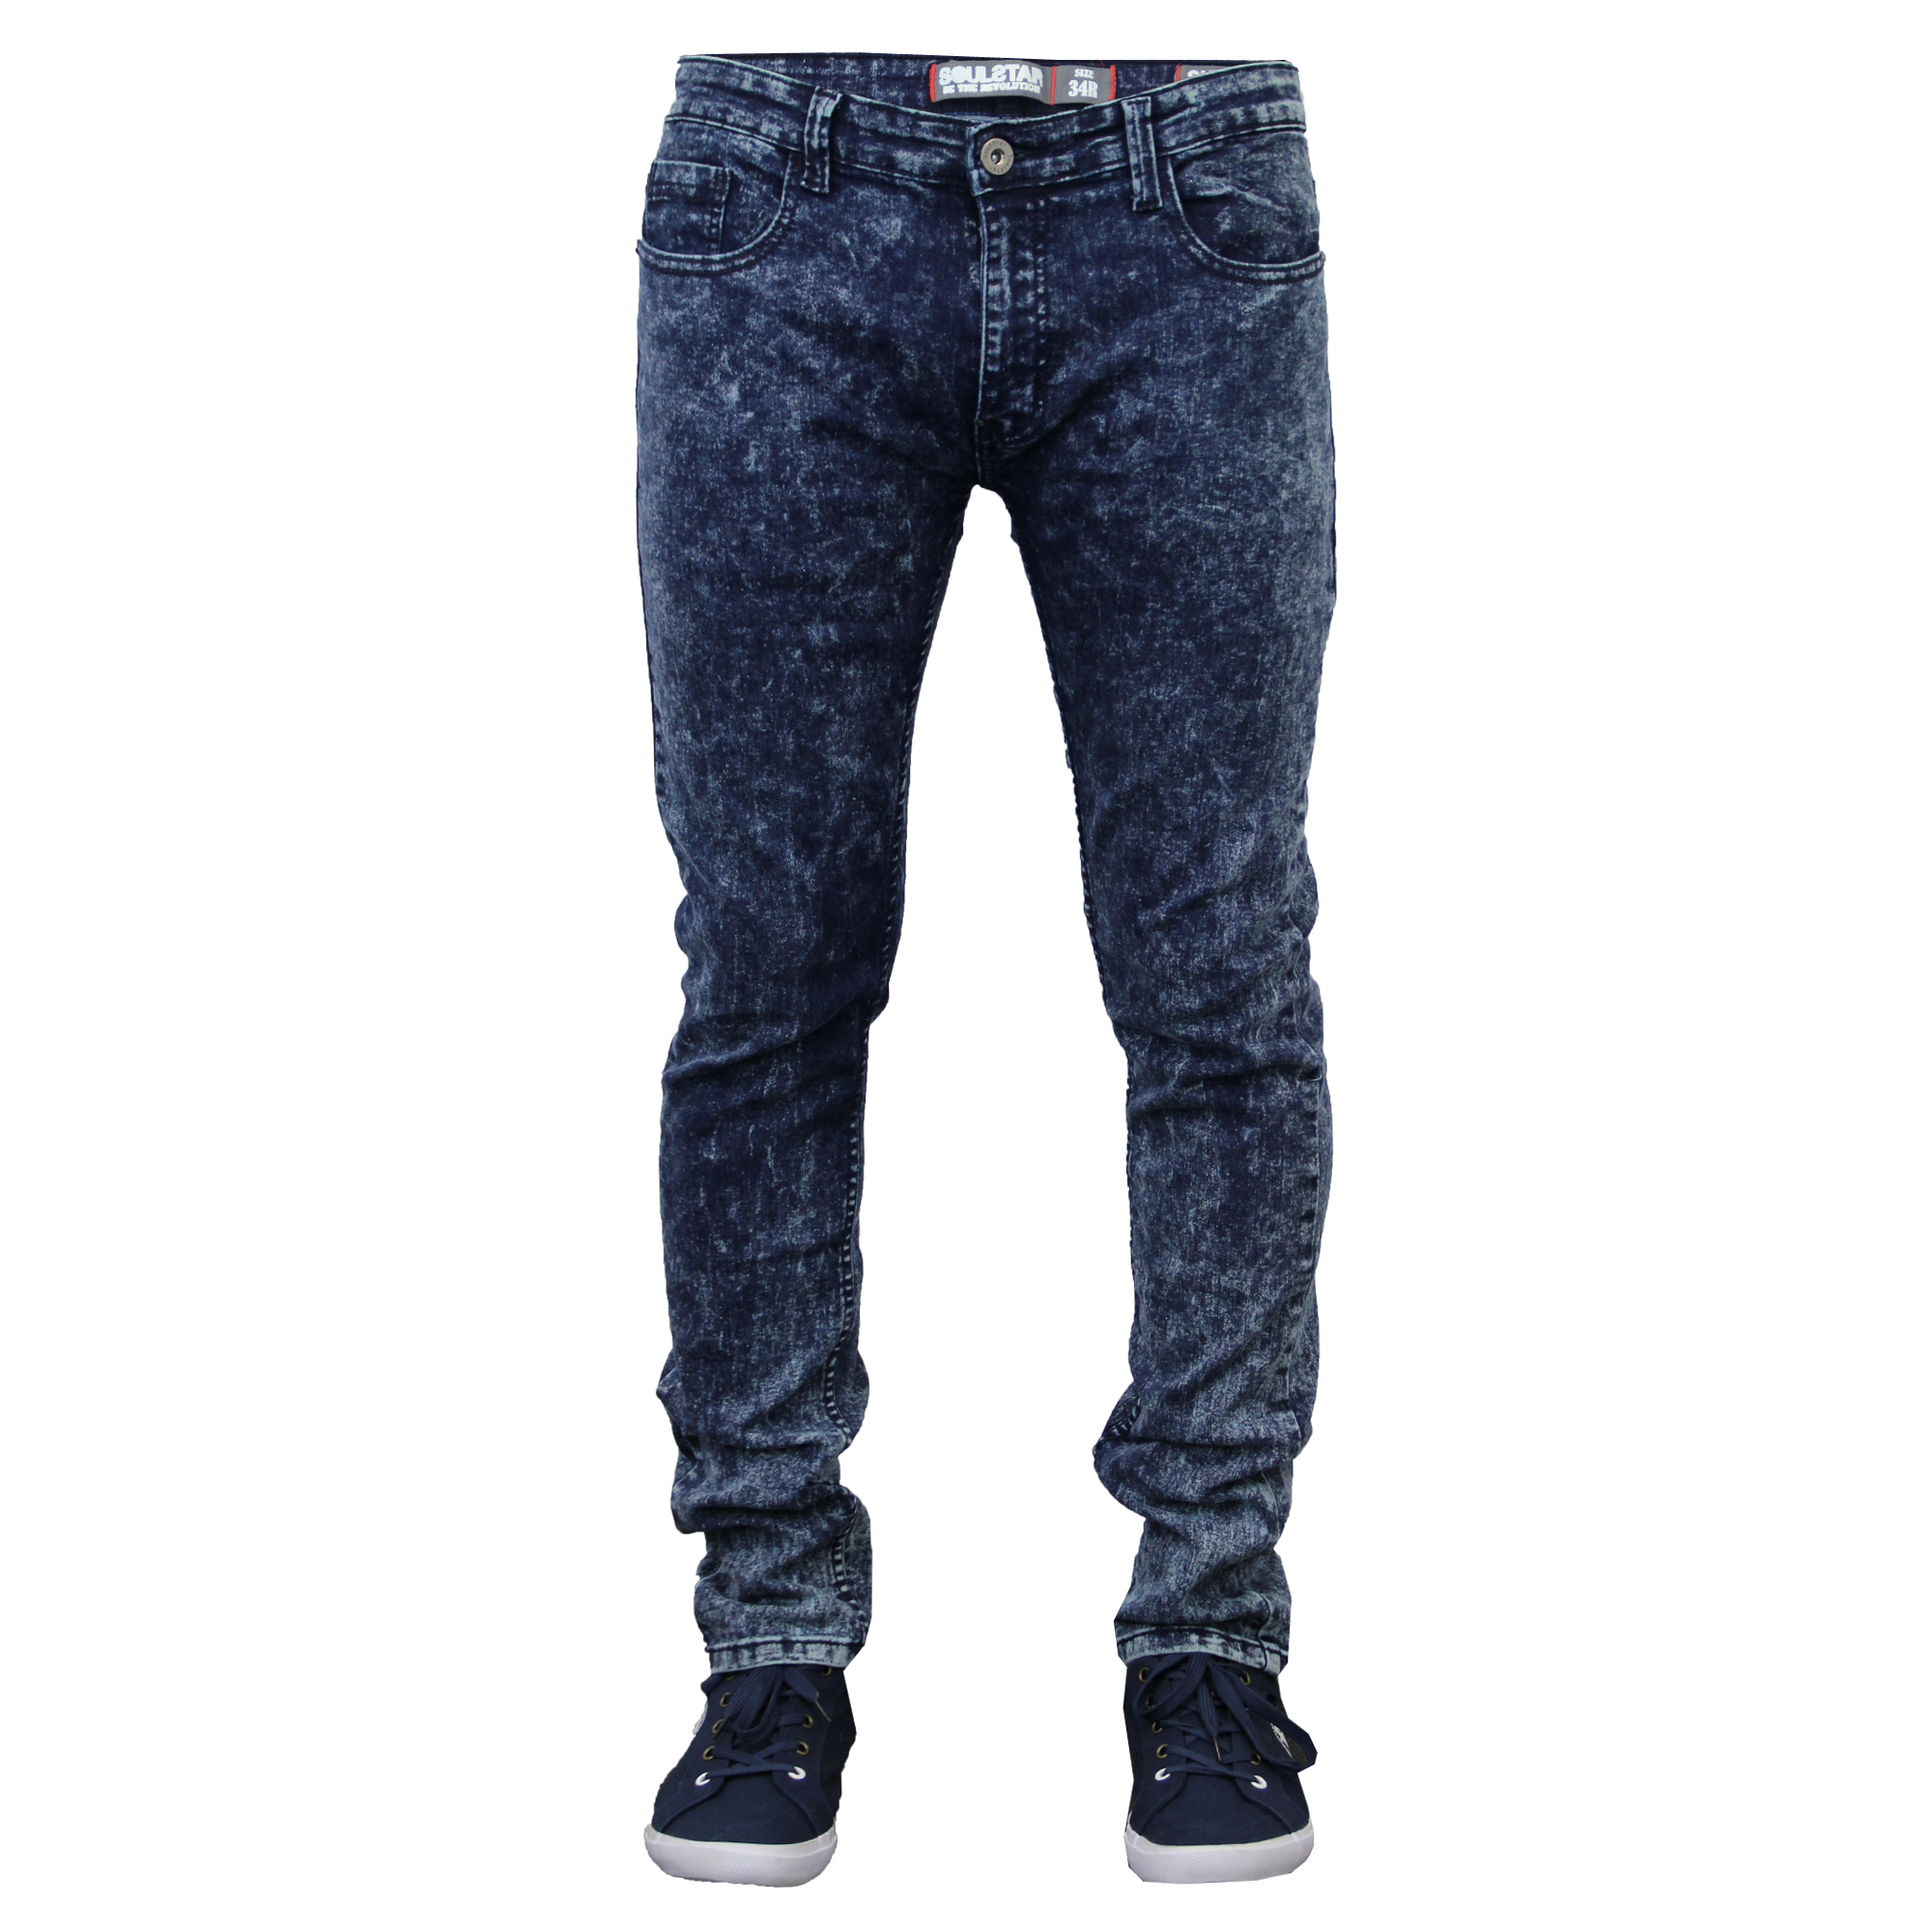 How to wear men's classic fit slim jeans? Men's classic fit slim jeans are easy and comfortable to wear, so you don't need to think too much about your outfit. These jeans look great with a basic t shirt, like a Pique Tipped Crew Neck Tee, or a casual button down shirt, like the Slim .